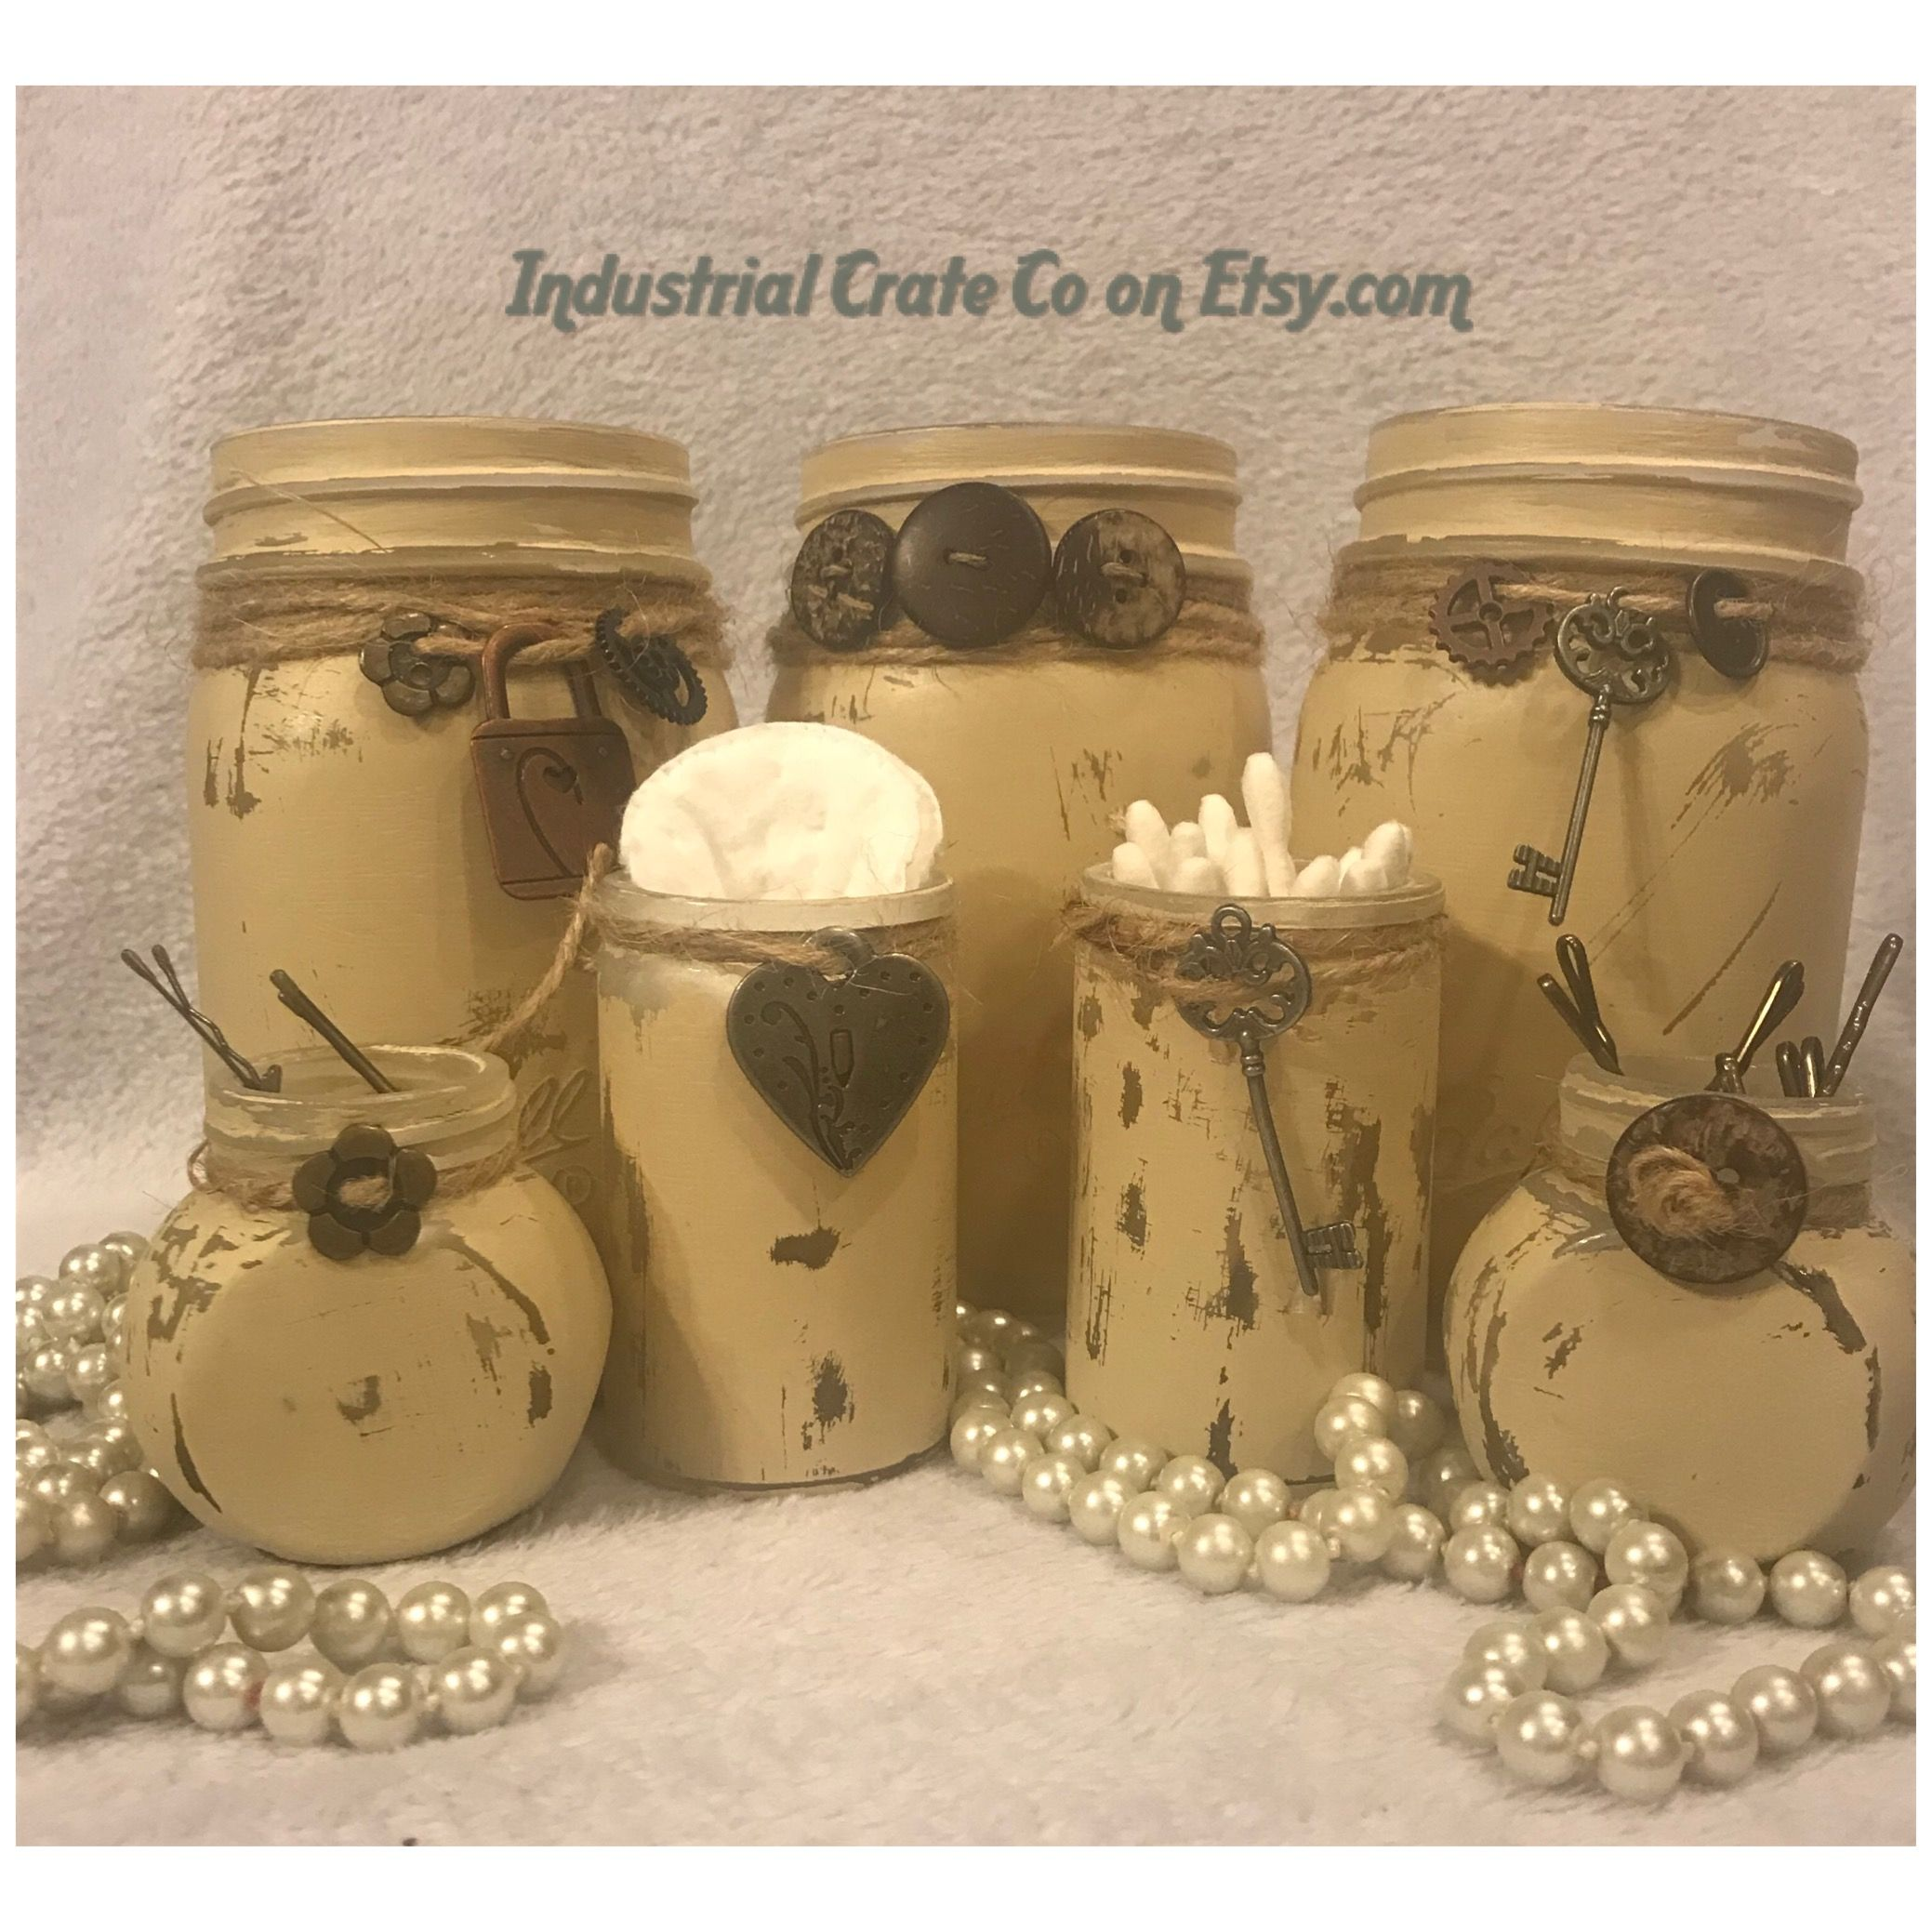 Mason Jar Set Sold On Etsy Made By Industrial Crate